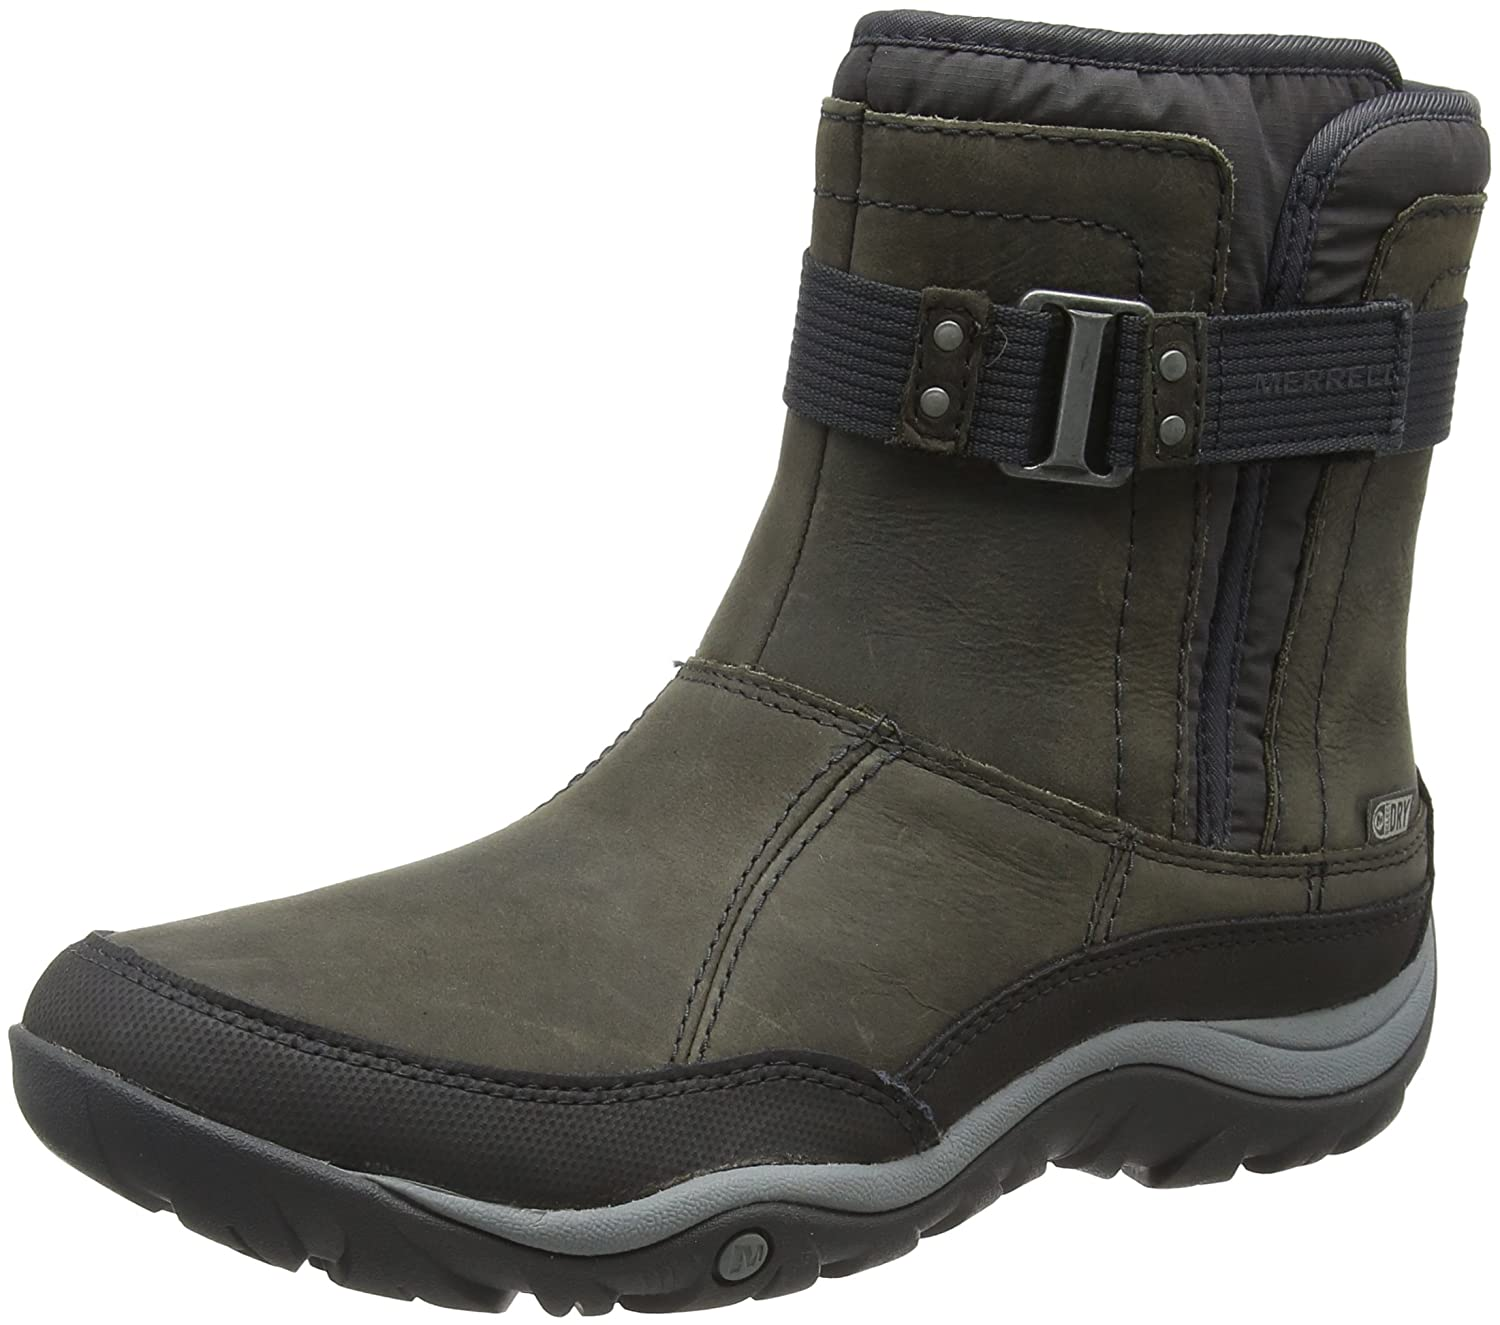 Merrell Women's Murren Strap Waterproof-W Snow Boot B01945I904 8 B(M) US|Pewter